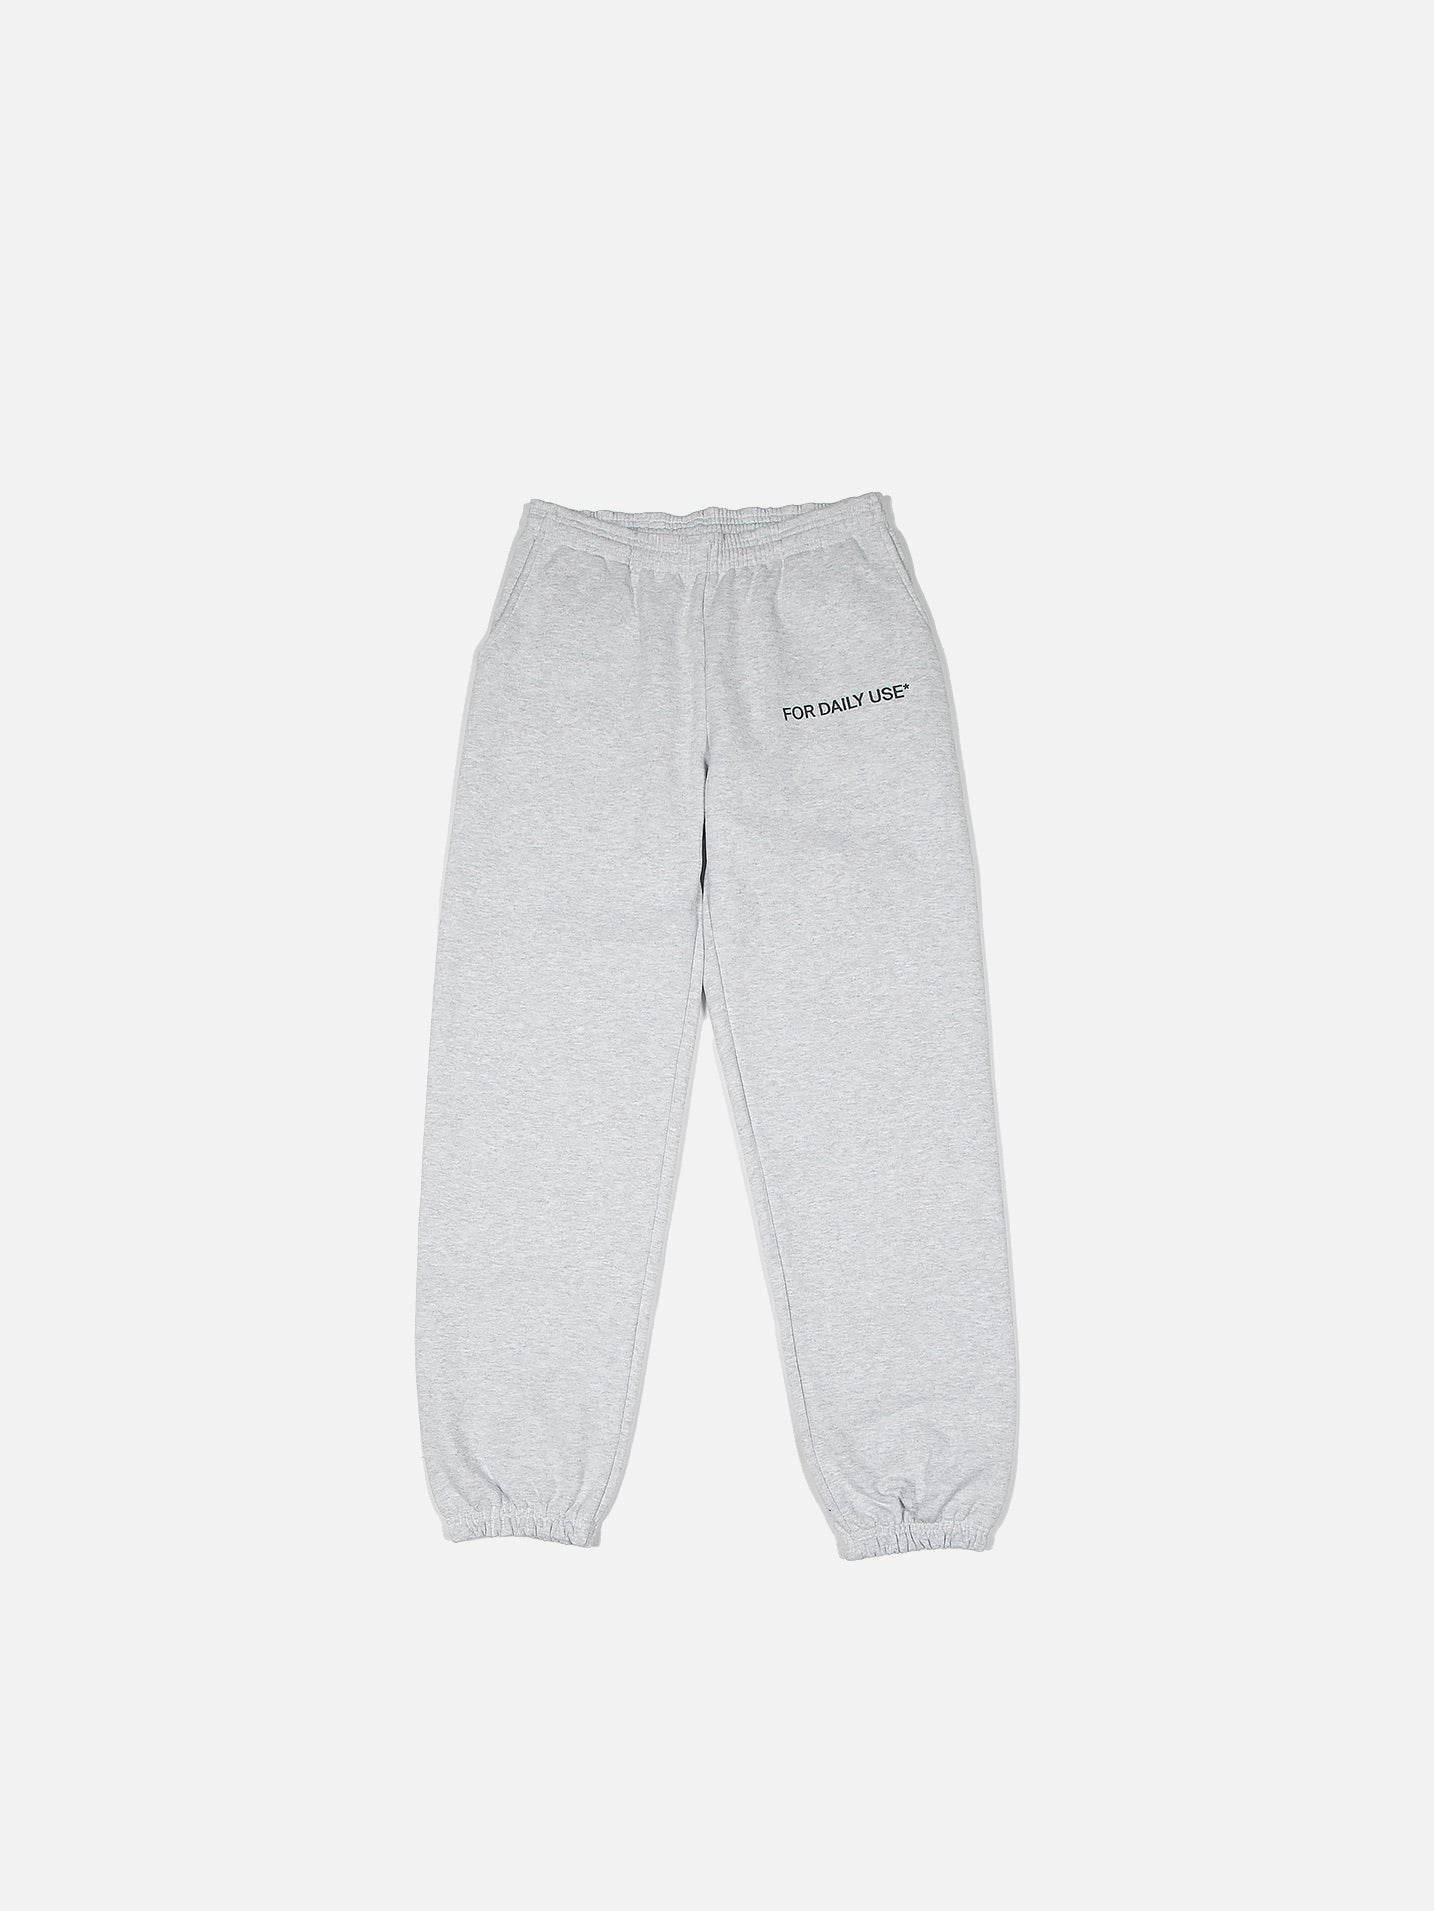 For Daily Use* Sweatpants - Ash